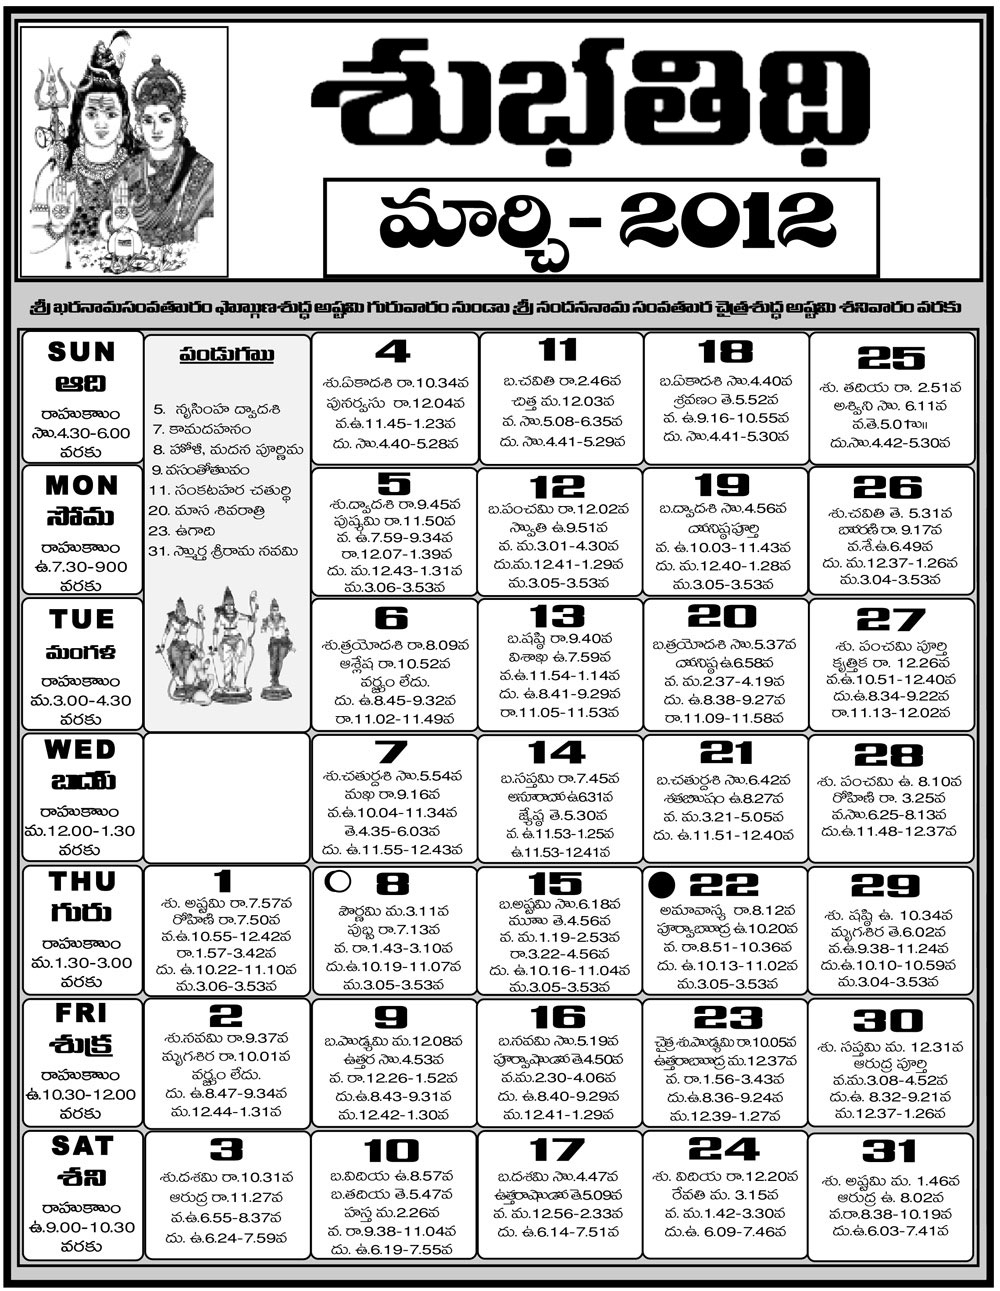 Telugu Calendar 2012 | Telugu Calendar 2011 | Telugu Calendar 2010 intended for Hindu Calendar With Tithi 2012 March